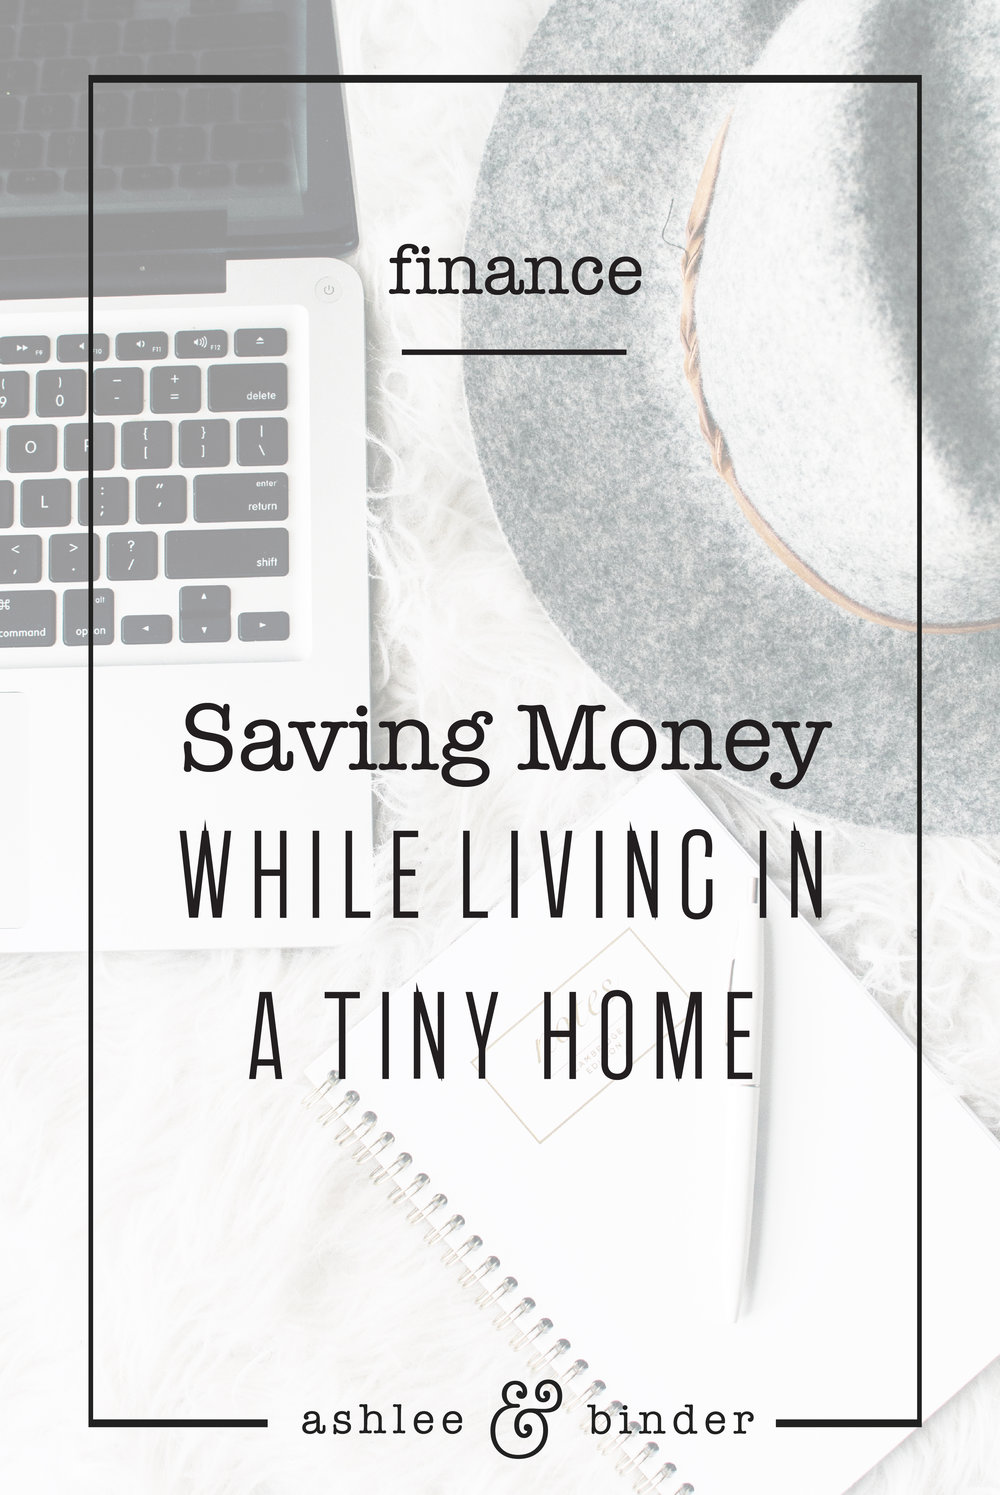 Saving Money While Living in A Tiny Home